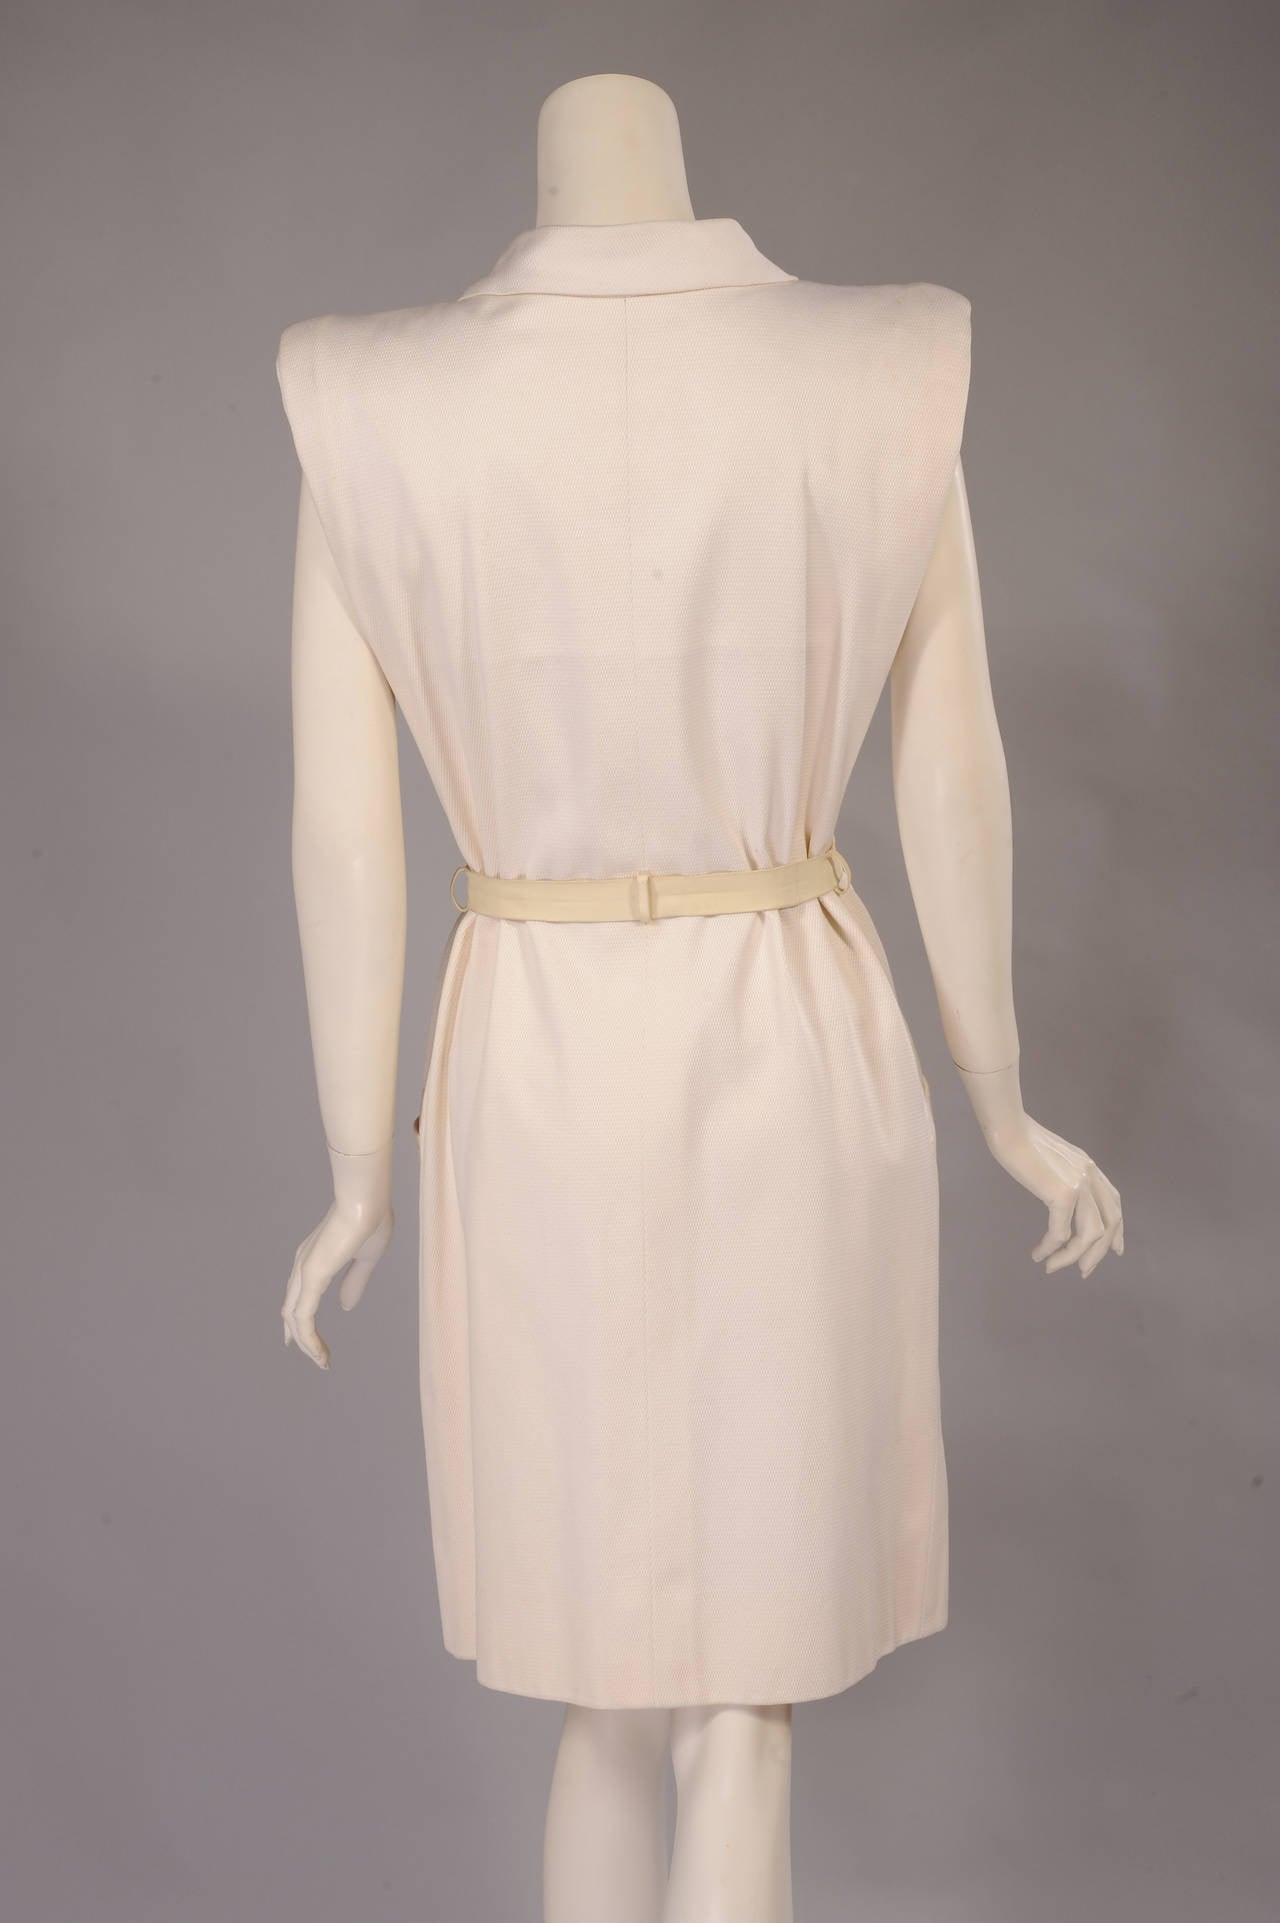 Yves Saint Laurent Haute Couture White Pique Summer Dress 4